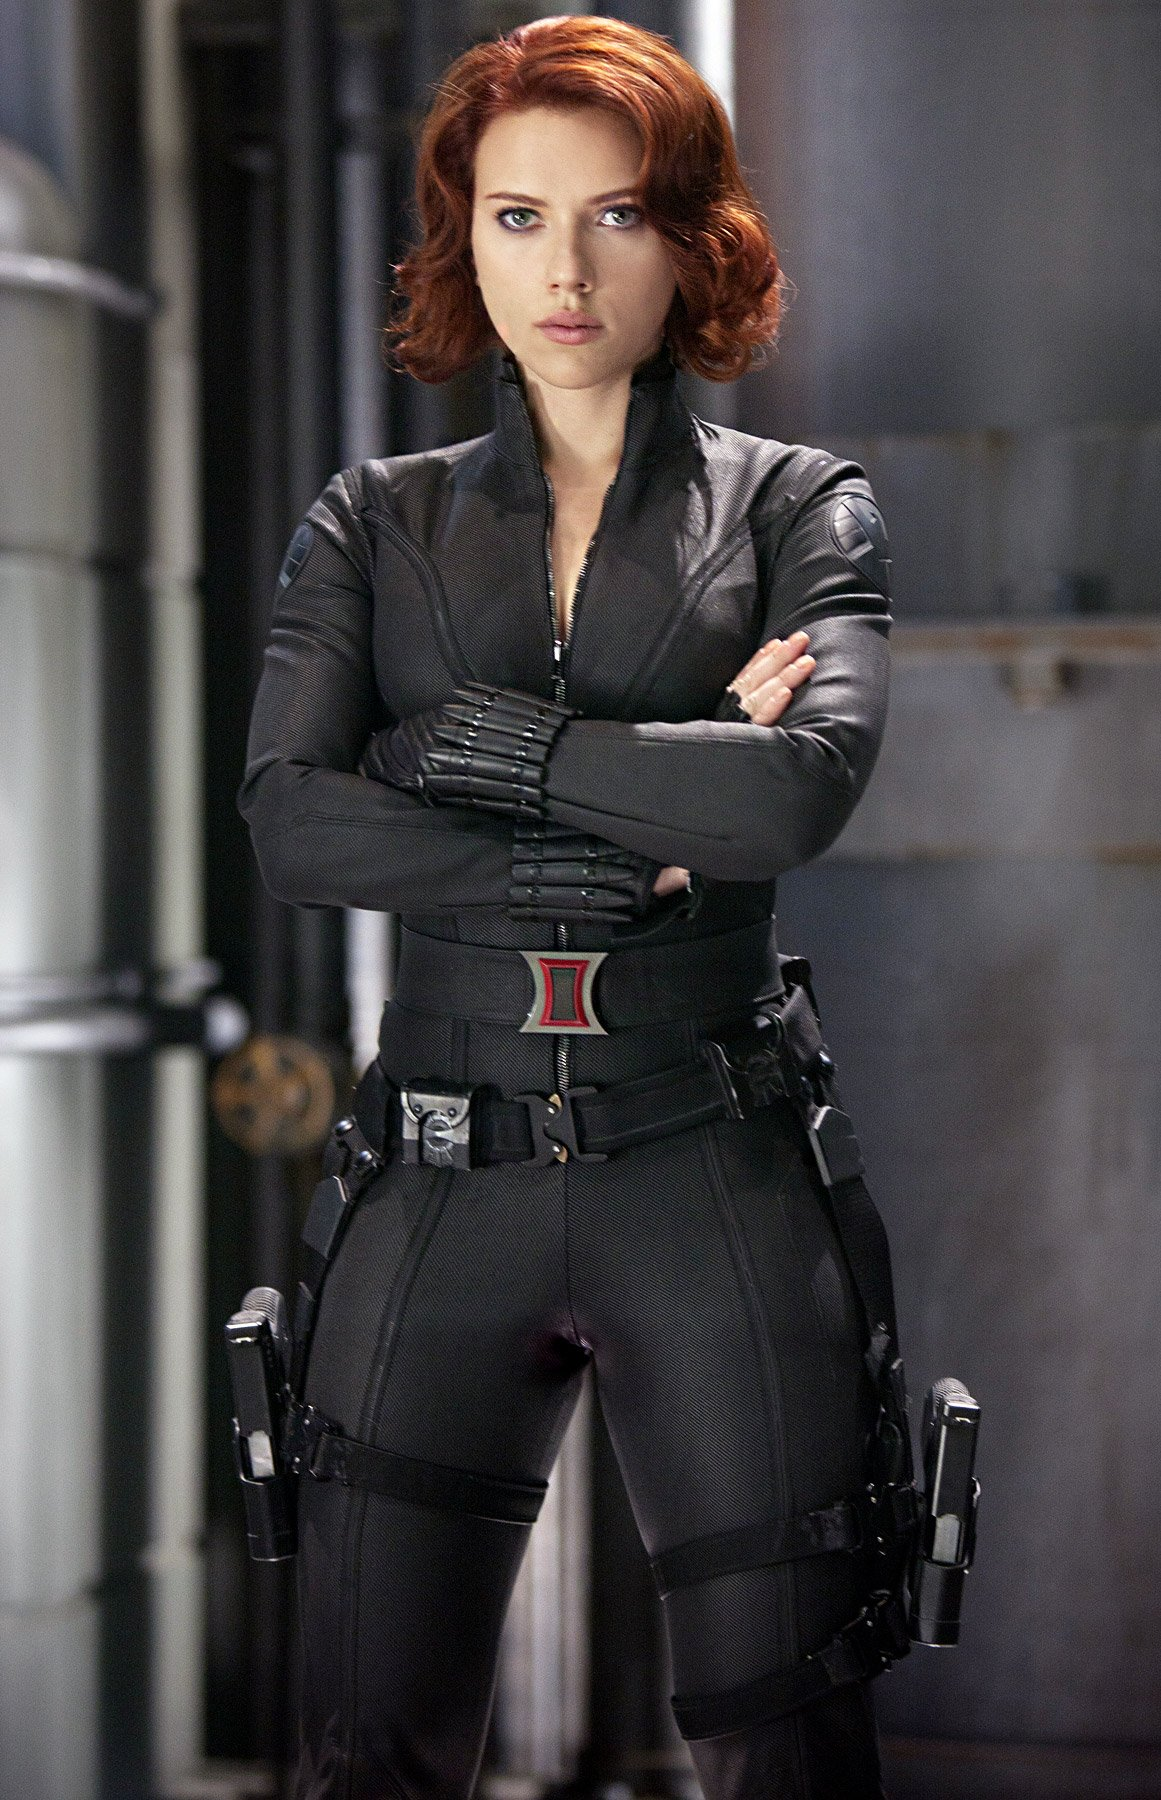 Happy birthday to Scarlett Johansson! who plays our incredible super Agent Romanoff!